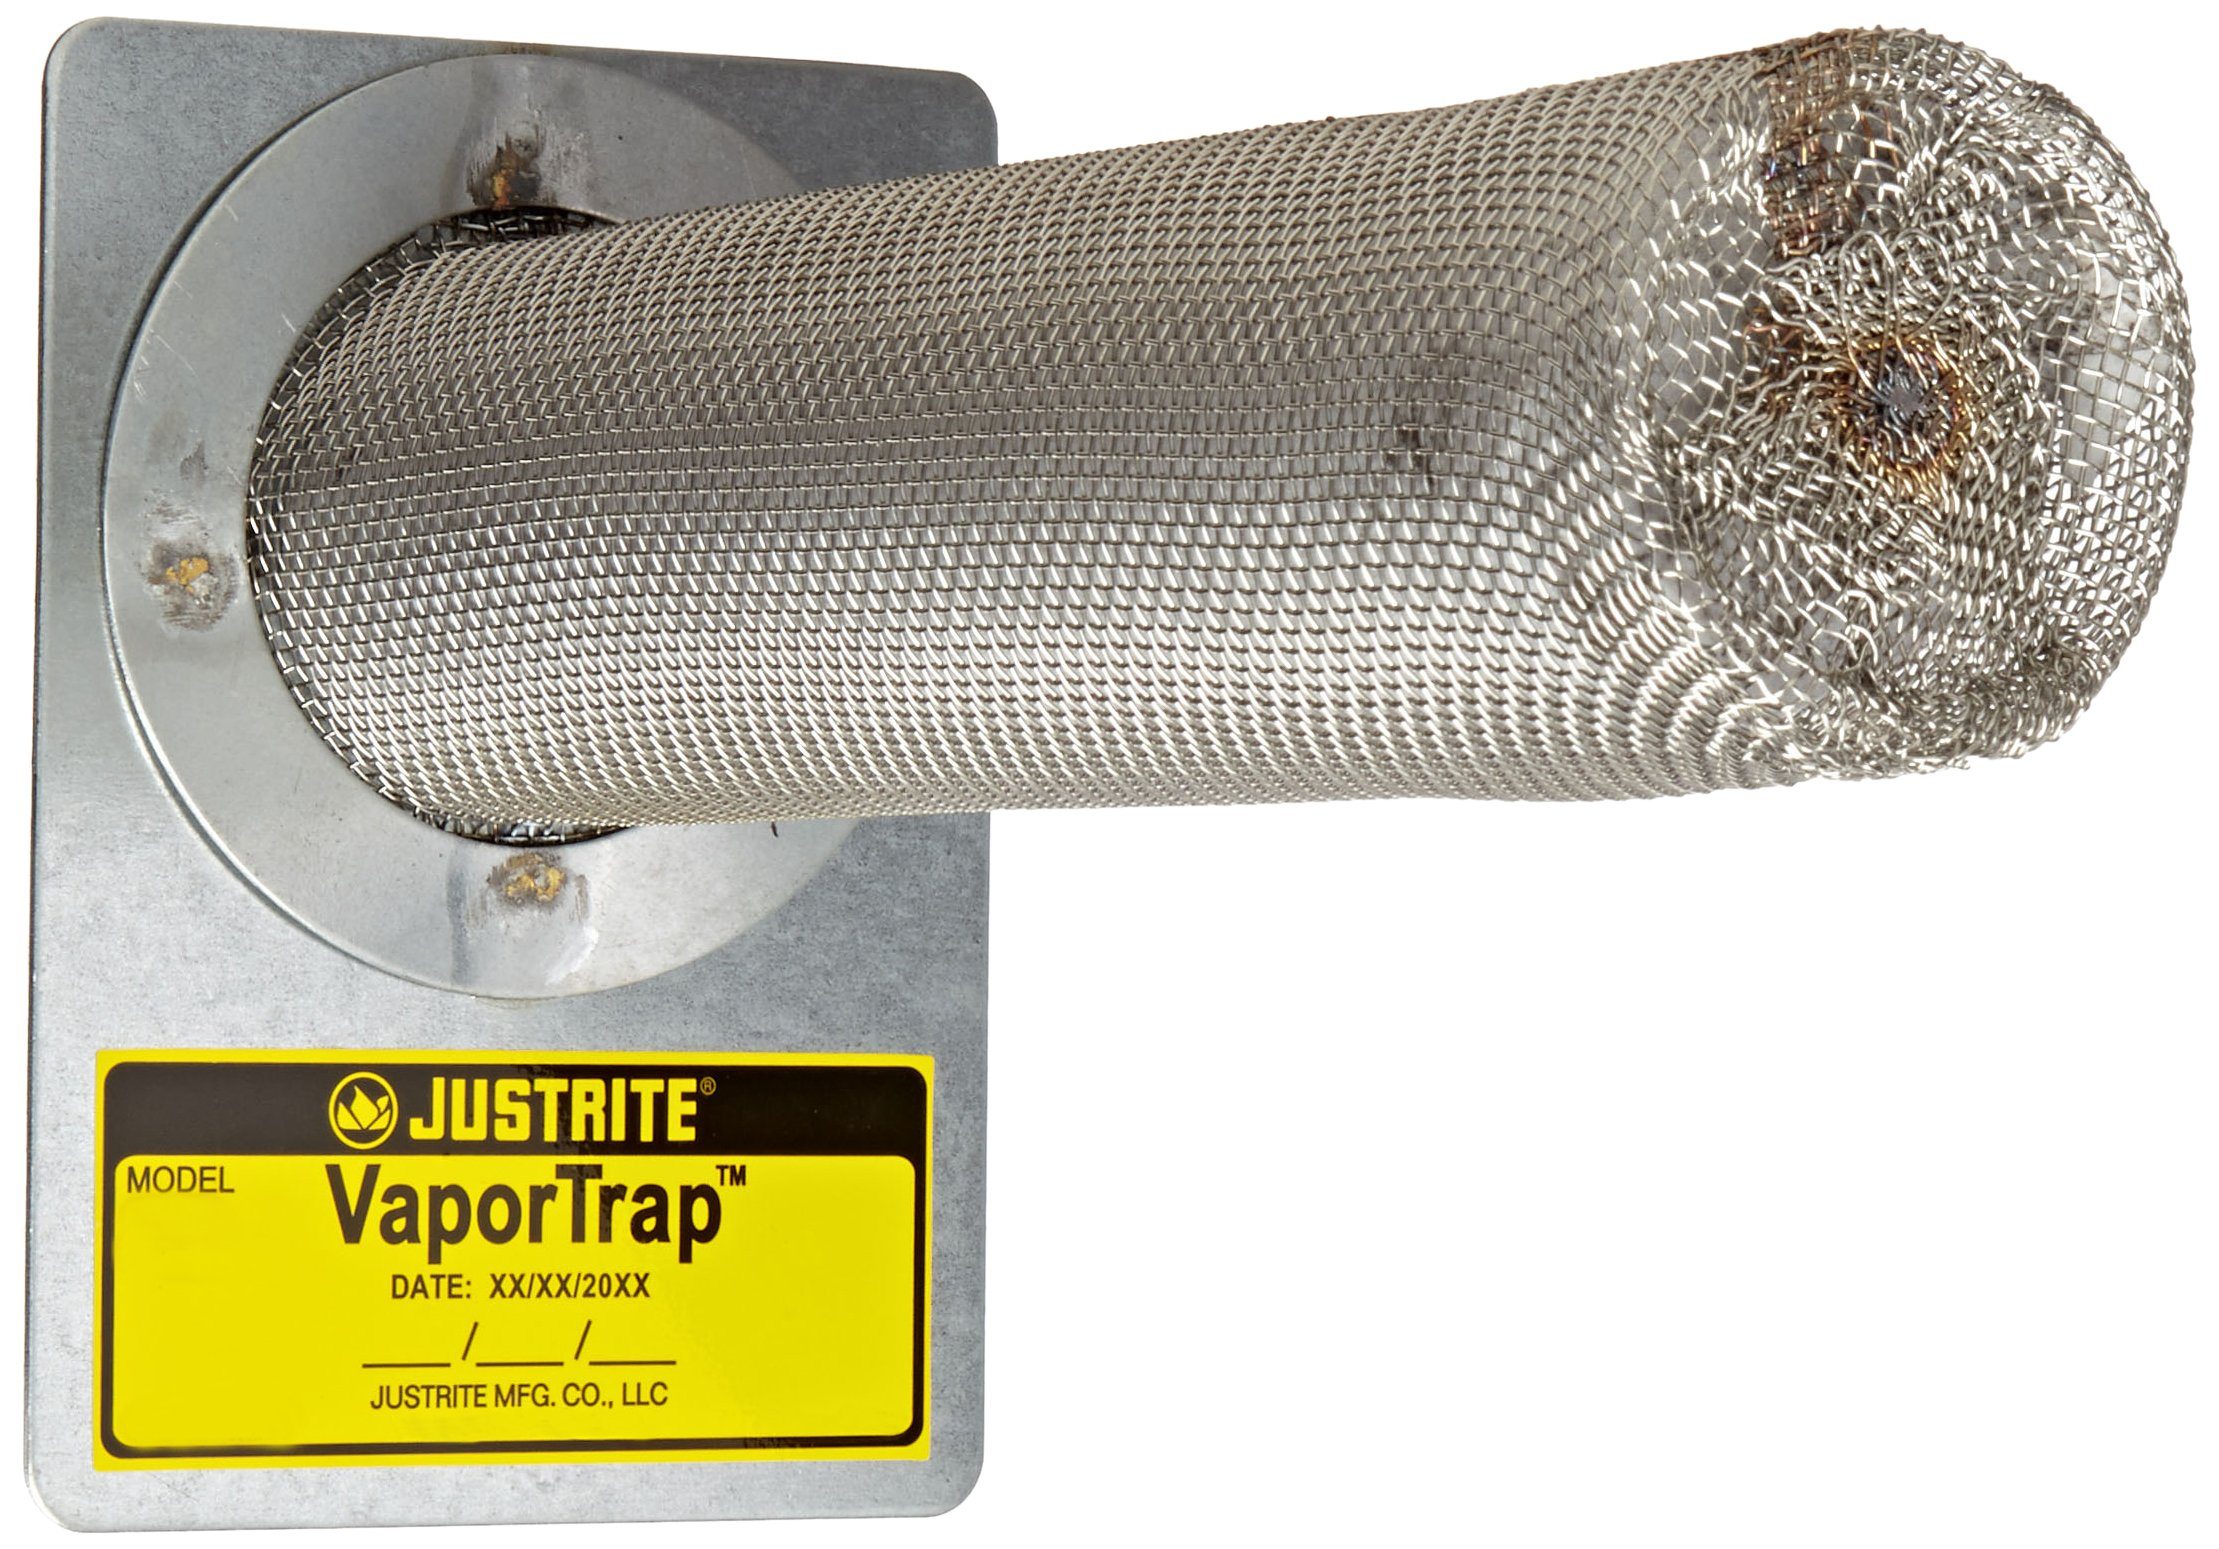 Justrite 29916 VaporTrap Cabinet Filter, 2-1/4'' Diameter x 8-3/4'' Length (Pack of 2)